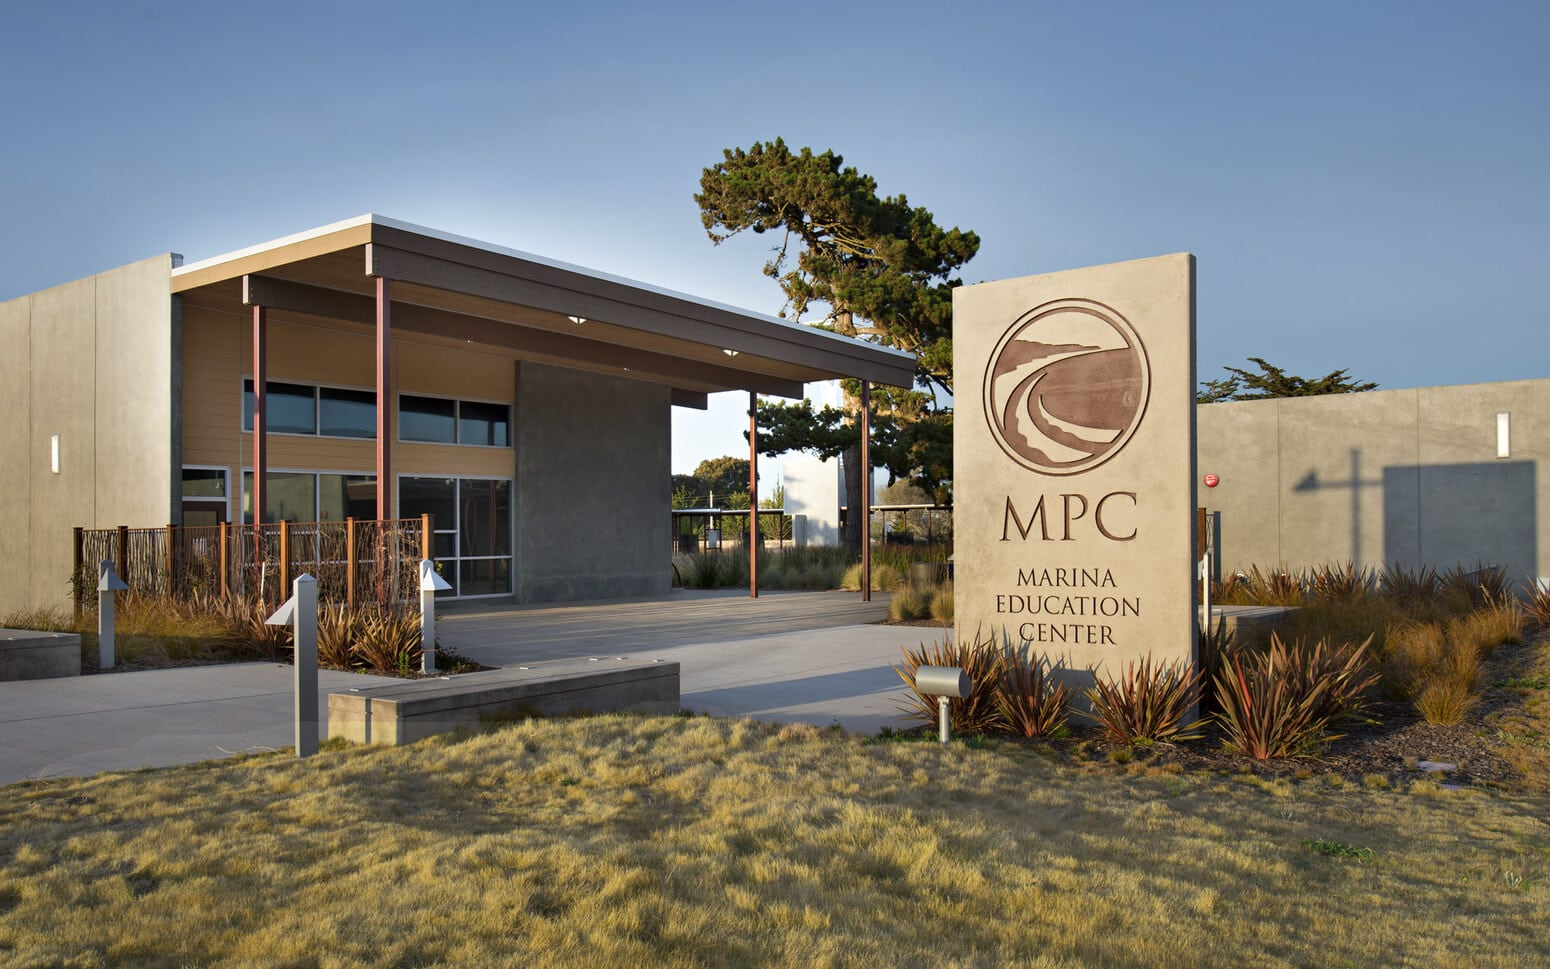 Monterey Peninsula College Marina Education Center 01